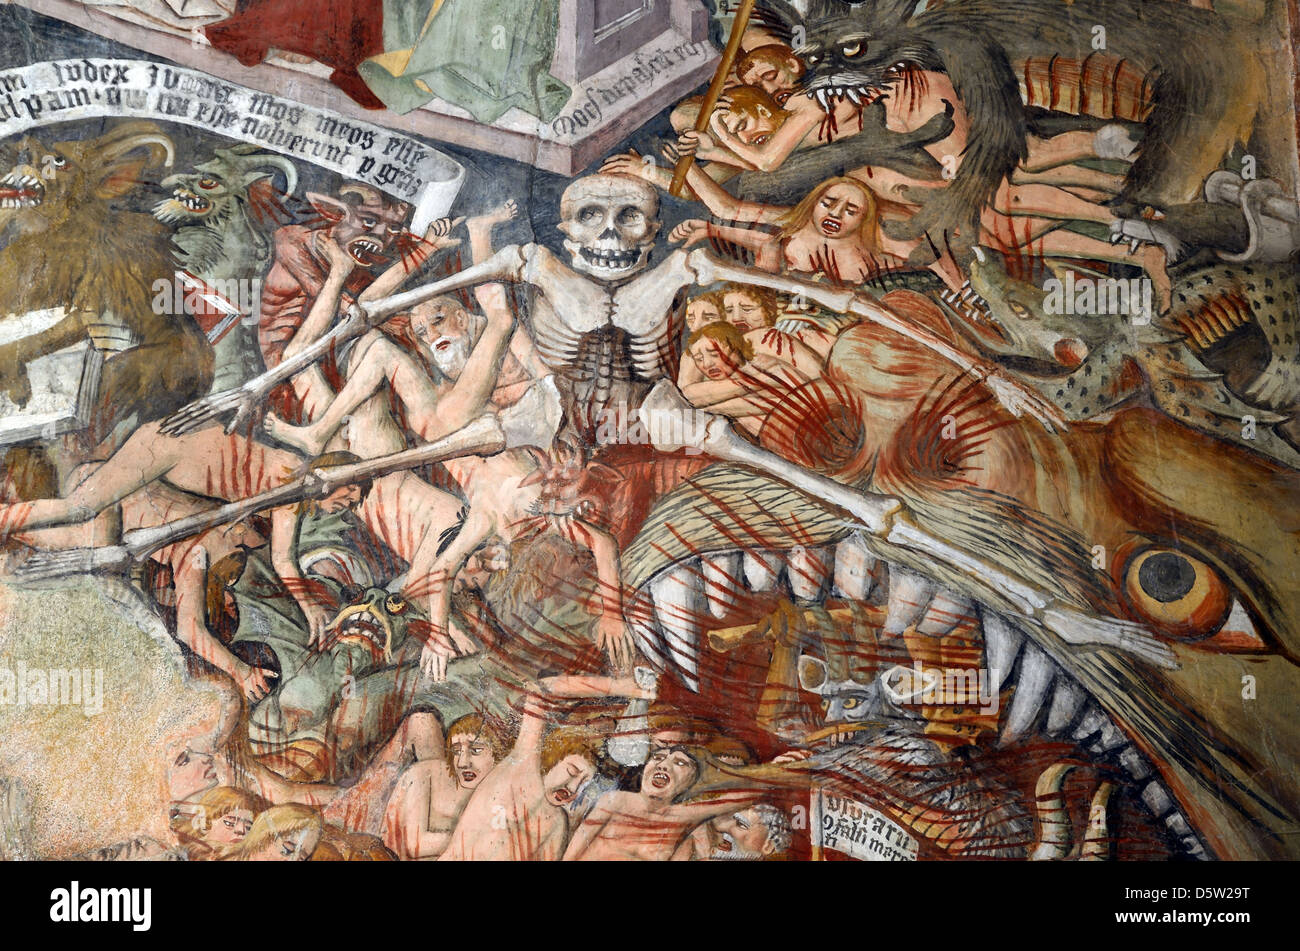 The Damned or Sinners in Hell Fresco (1492-1530) Notre-Dame des Fontaines La Brigue Roya Valley Alpes-Maritimes - Stock Image